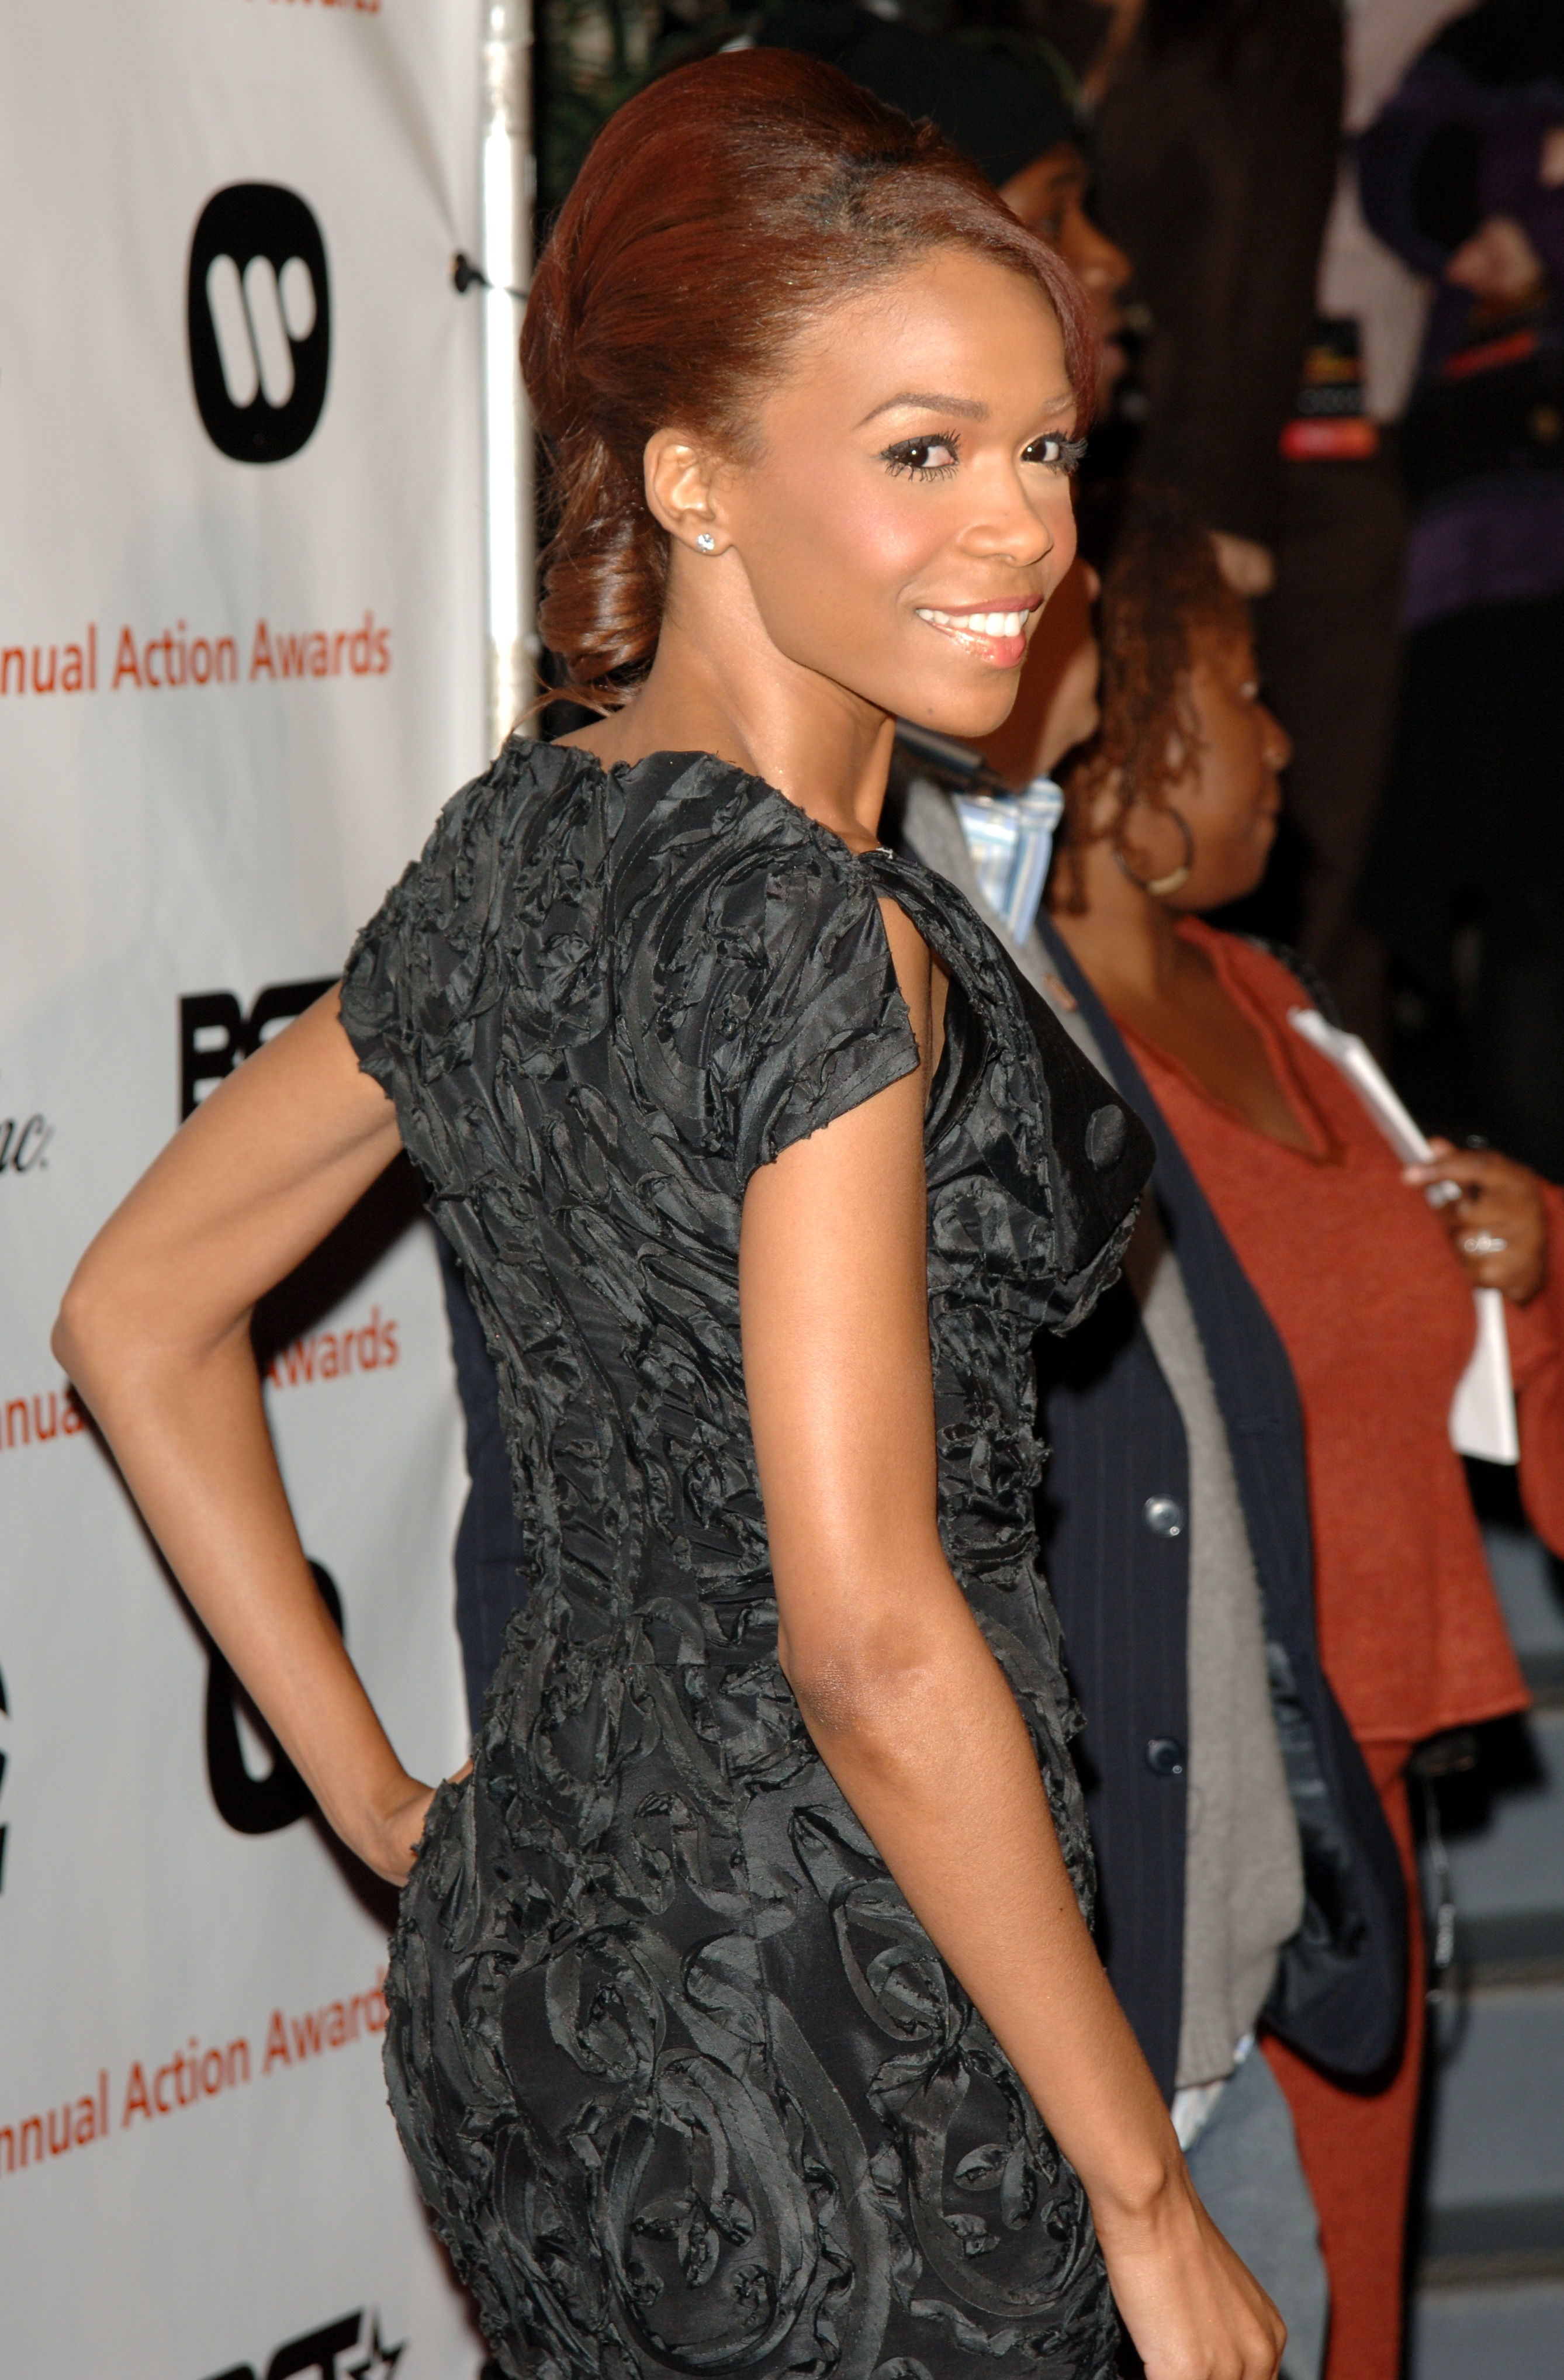 3rd Annual Action Awards Benefit Dinner NYC